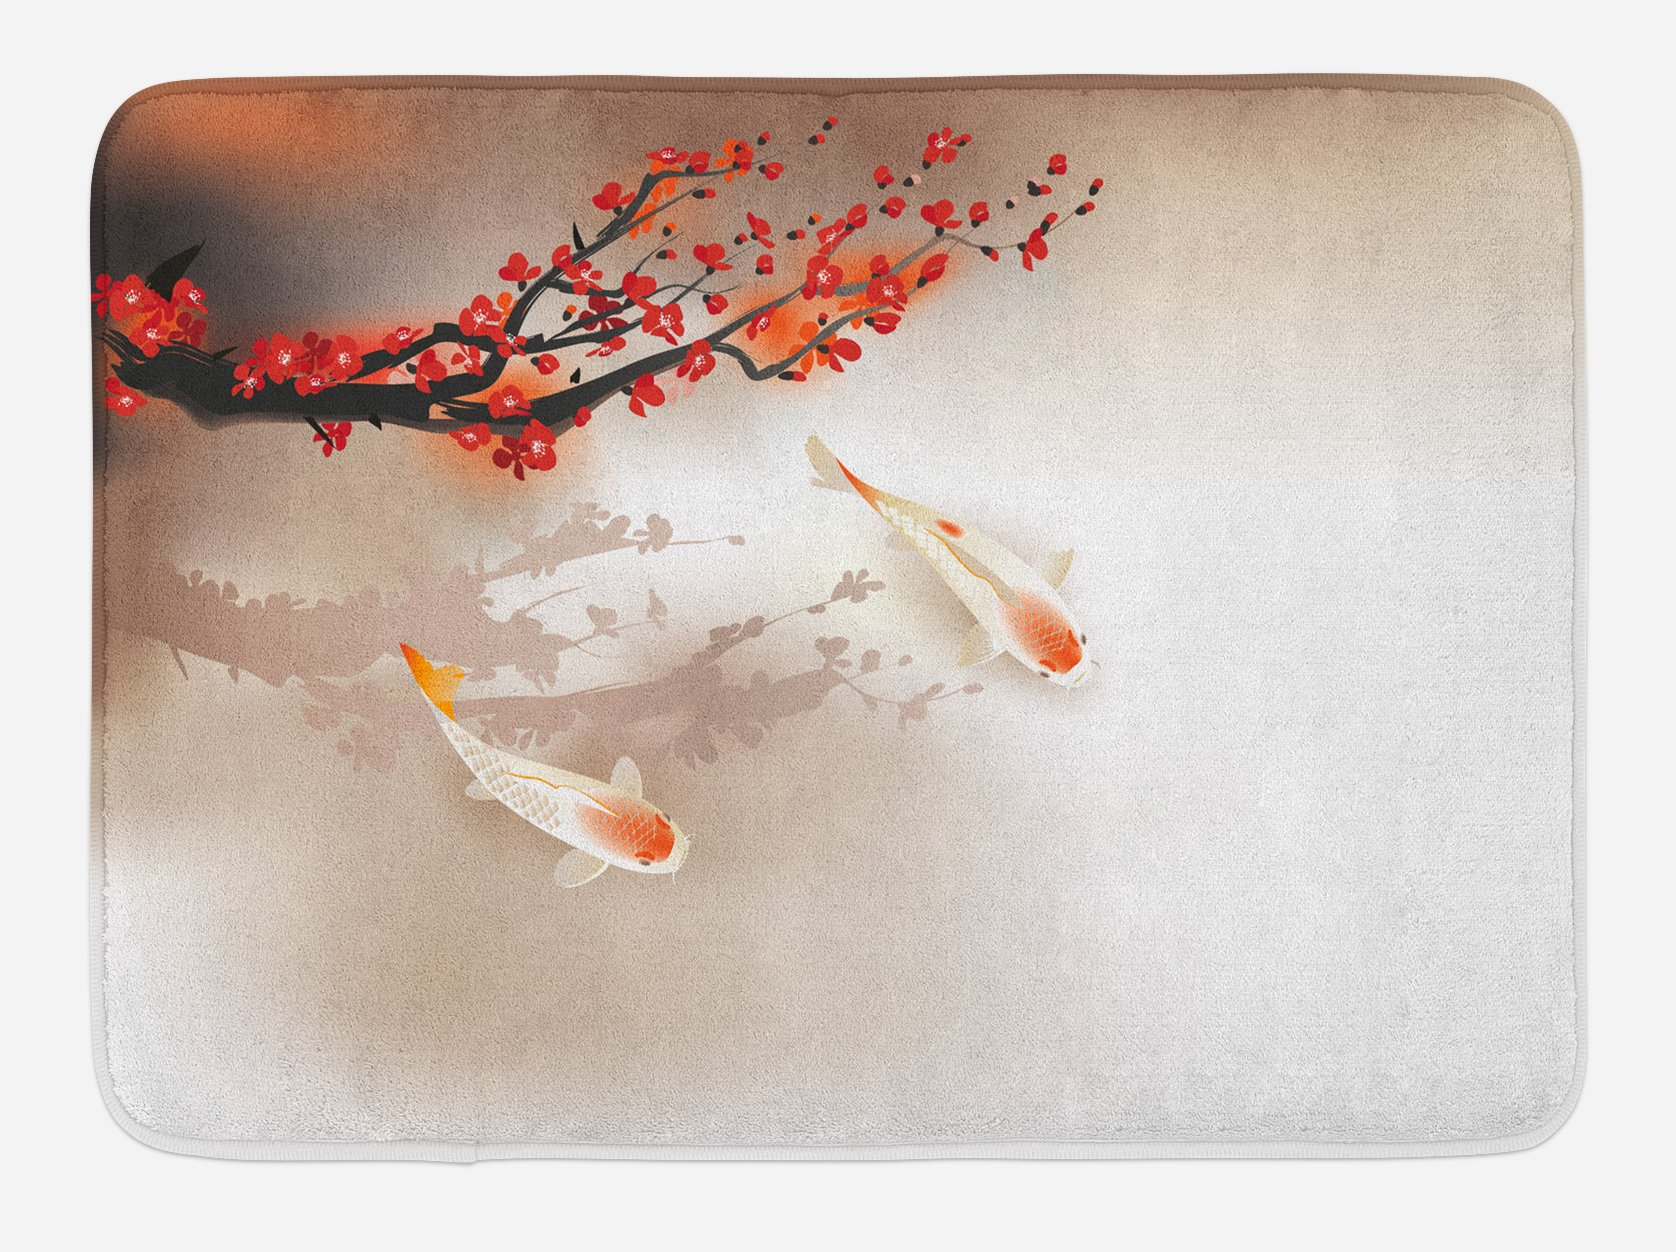 Lunarable Koi Fish Bath Mat, Sakura Branch and Leaves Sacred Animals in Small Body of Water Oriental Style, Plush Bathroom Decor Mat with Non Slip Backing, 29.5 W X 17.5 W Inches, Peach Black Red